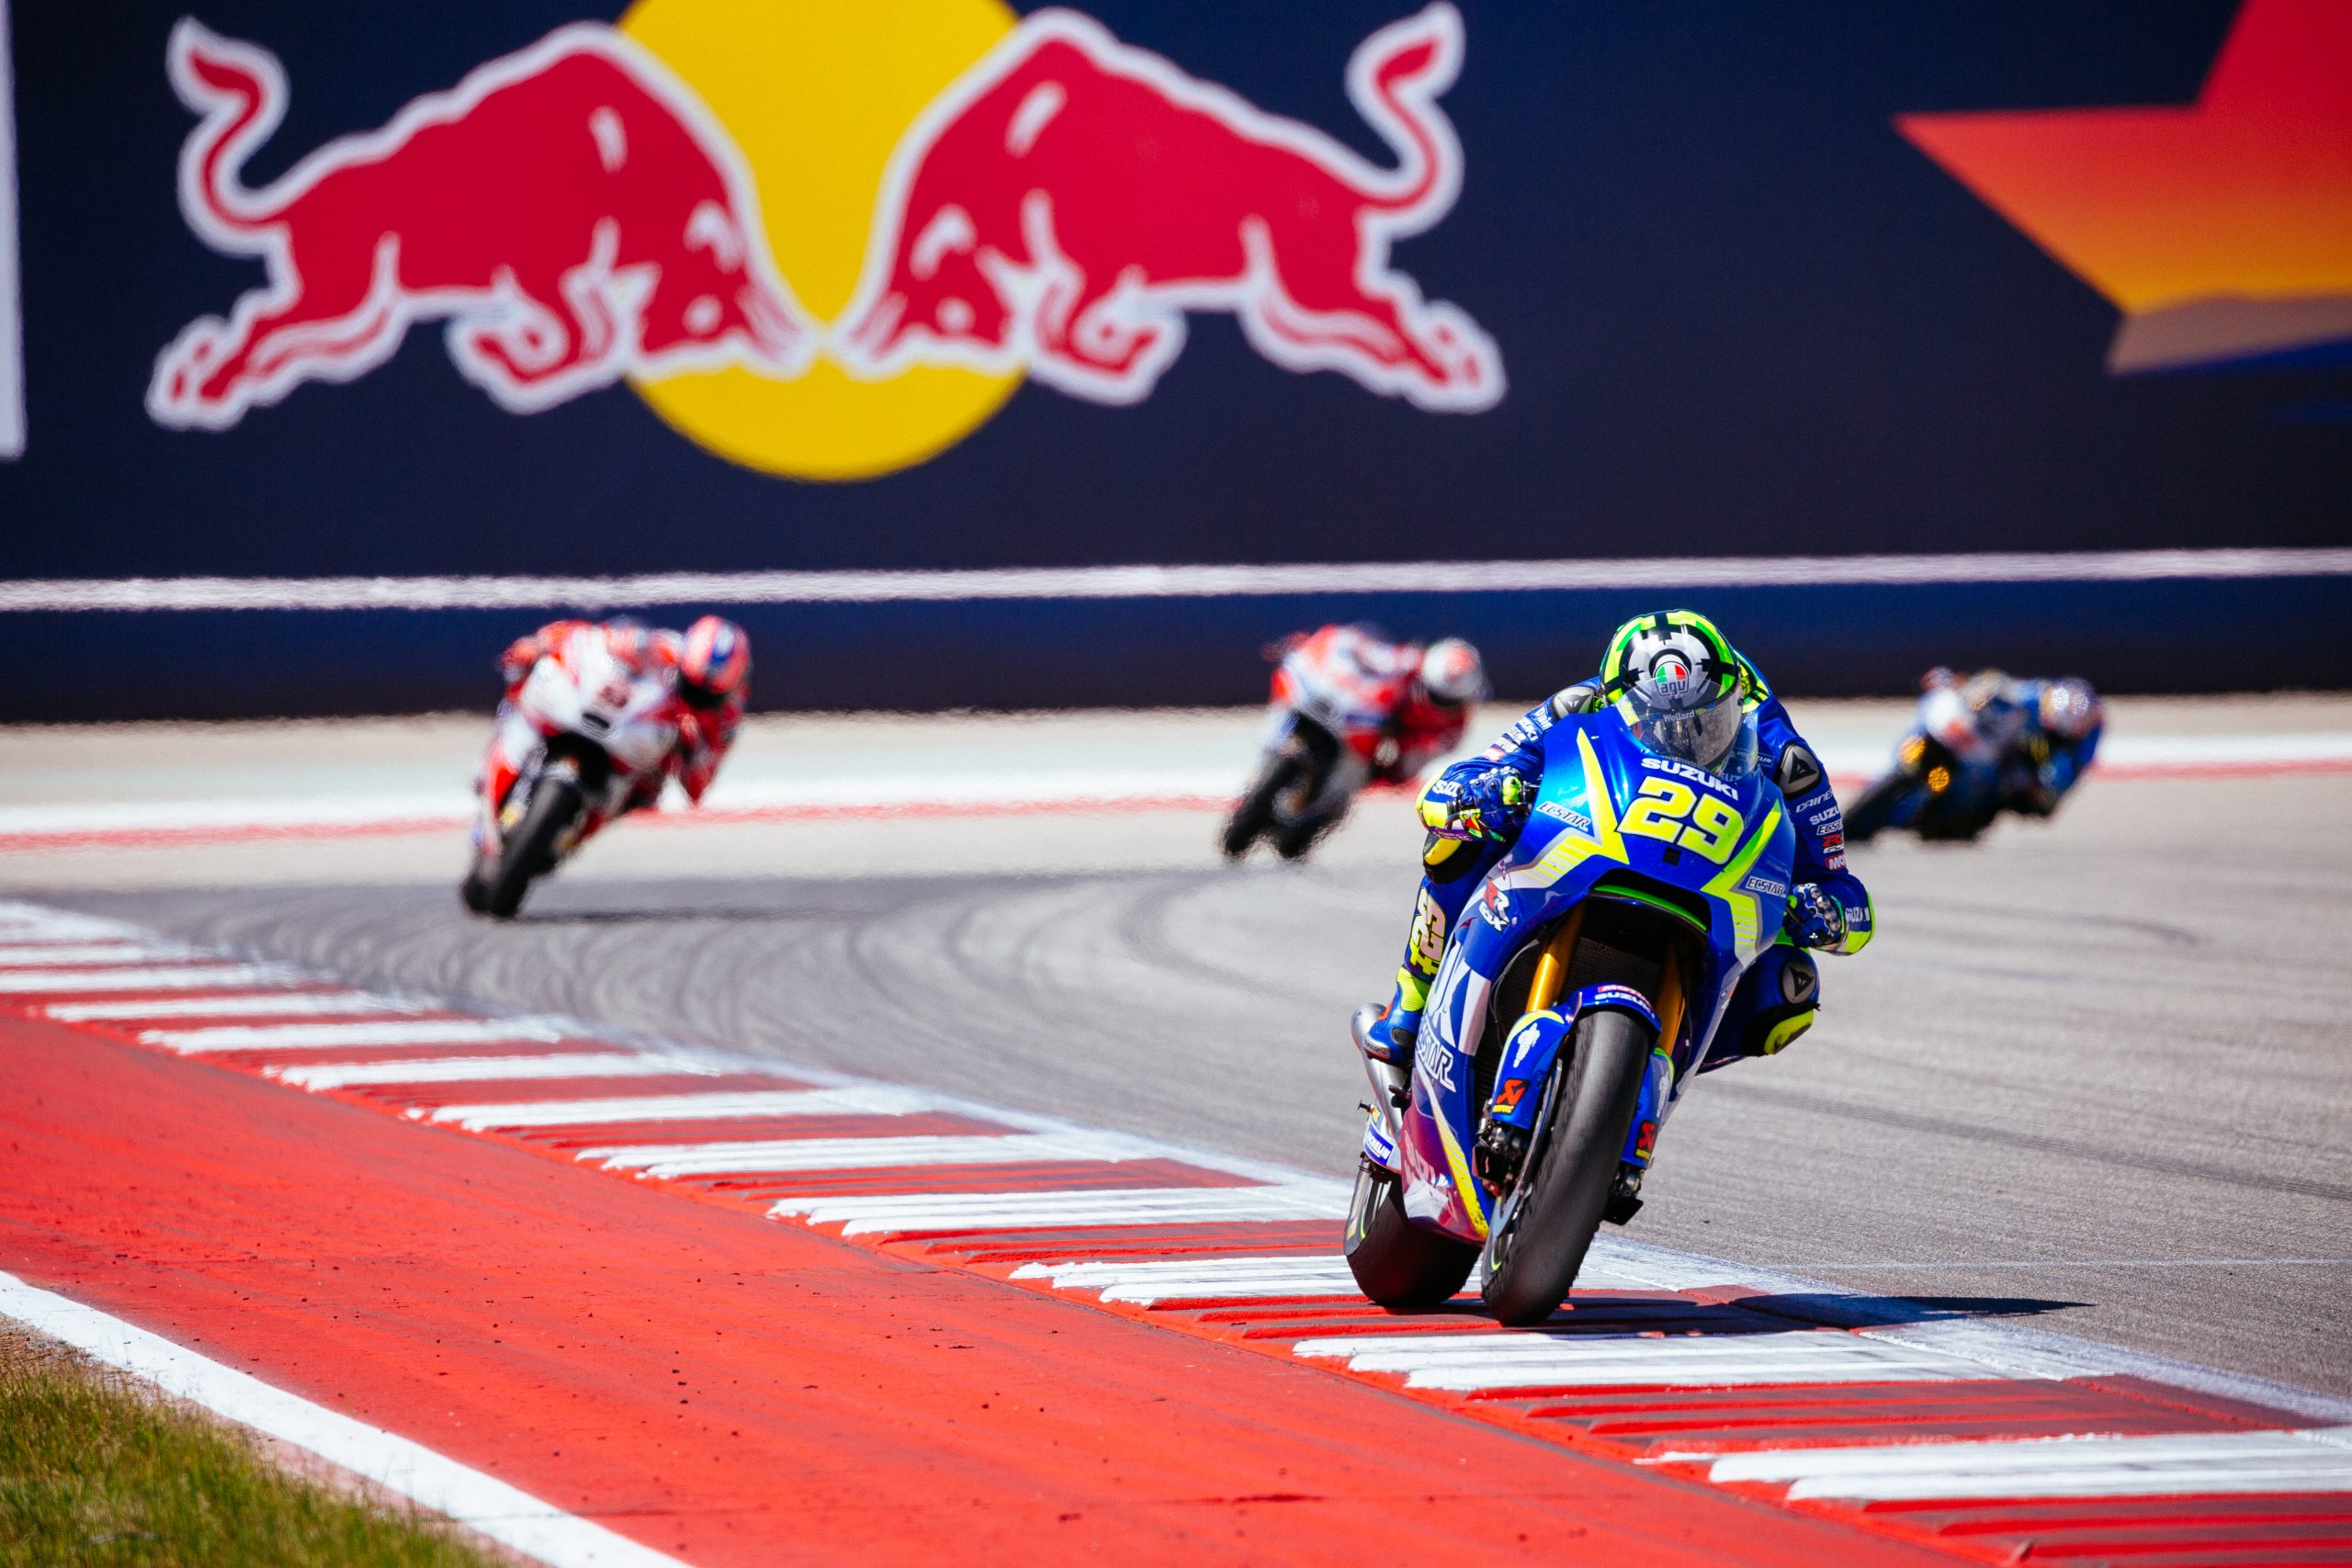 2017 MotoGP Red Bull Grand Prix of the Americas